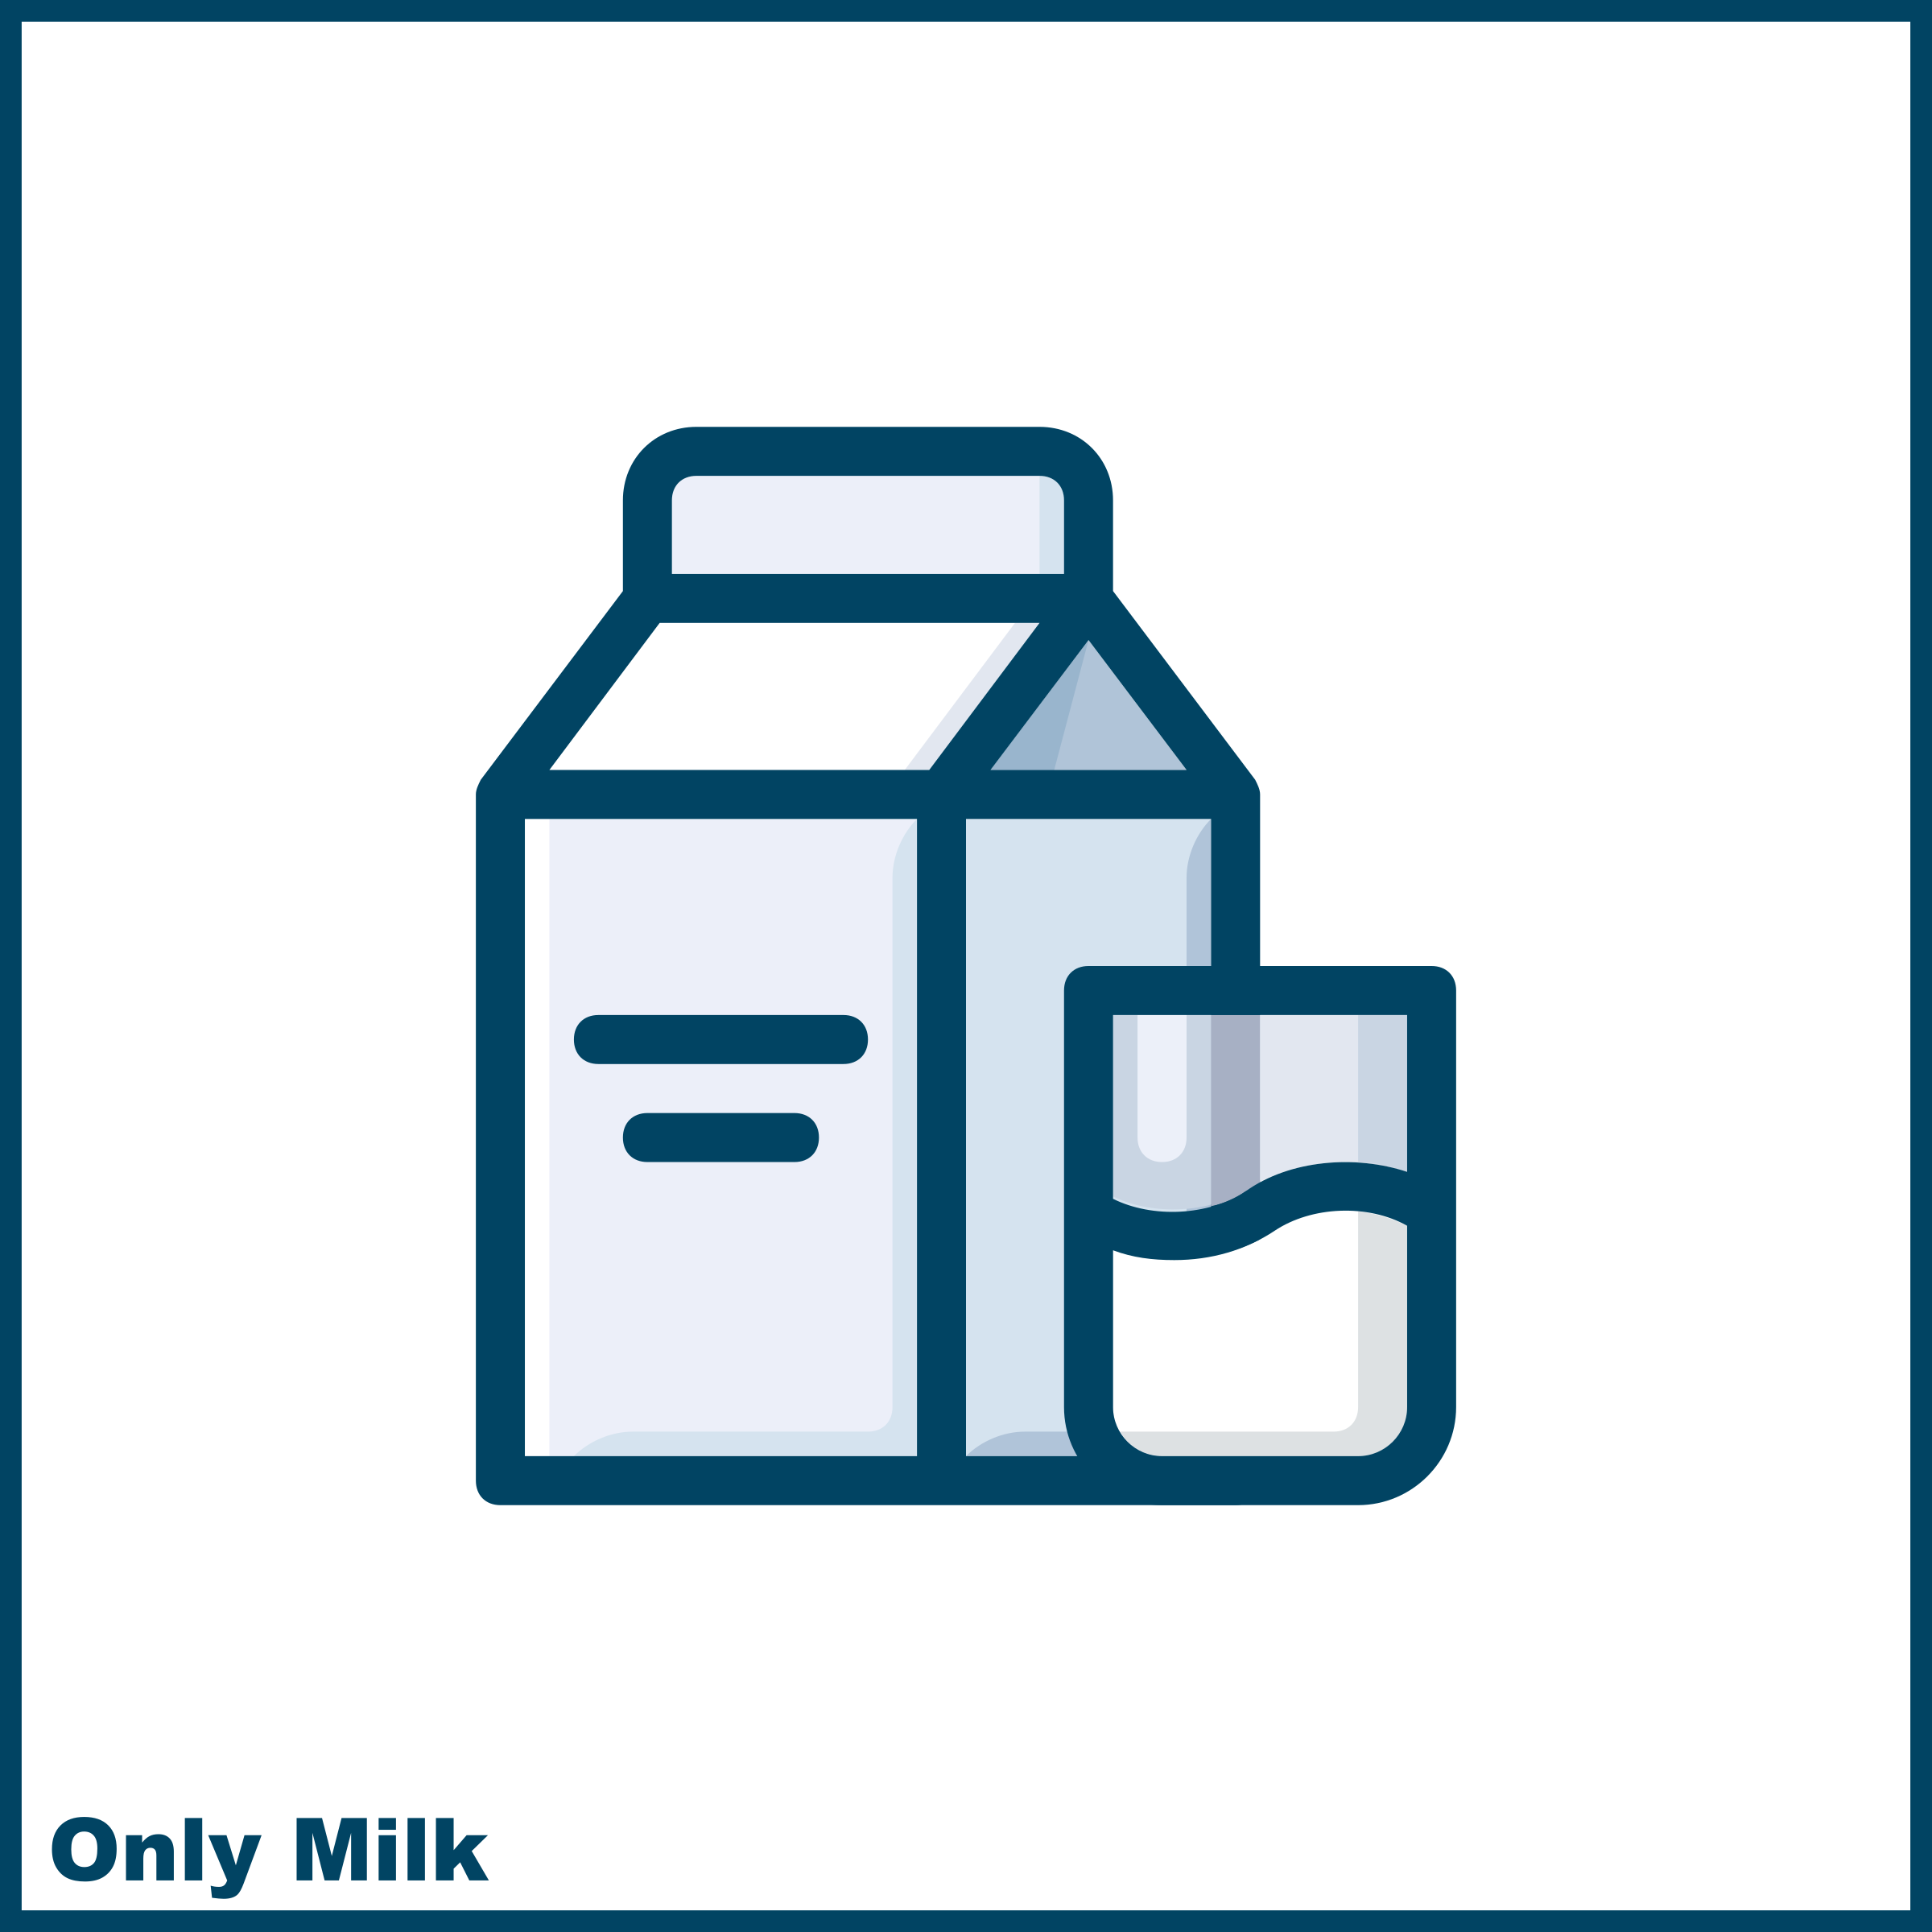 Only Milk by dordy